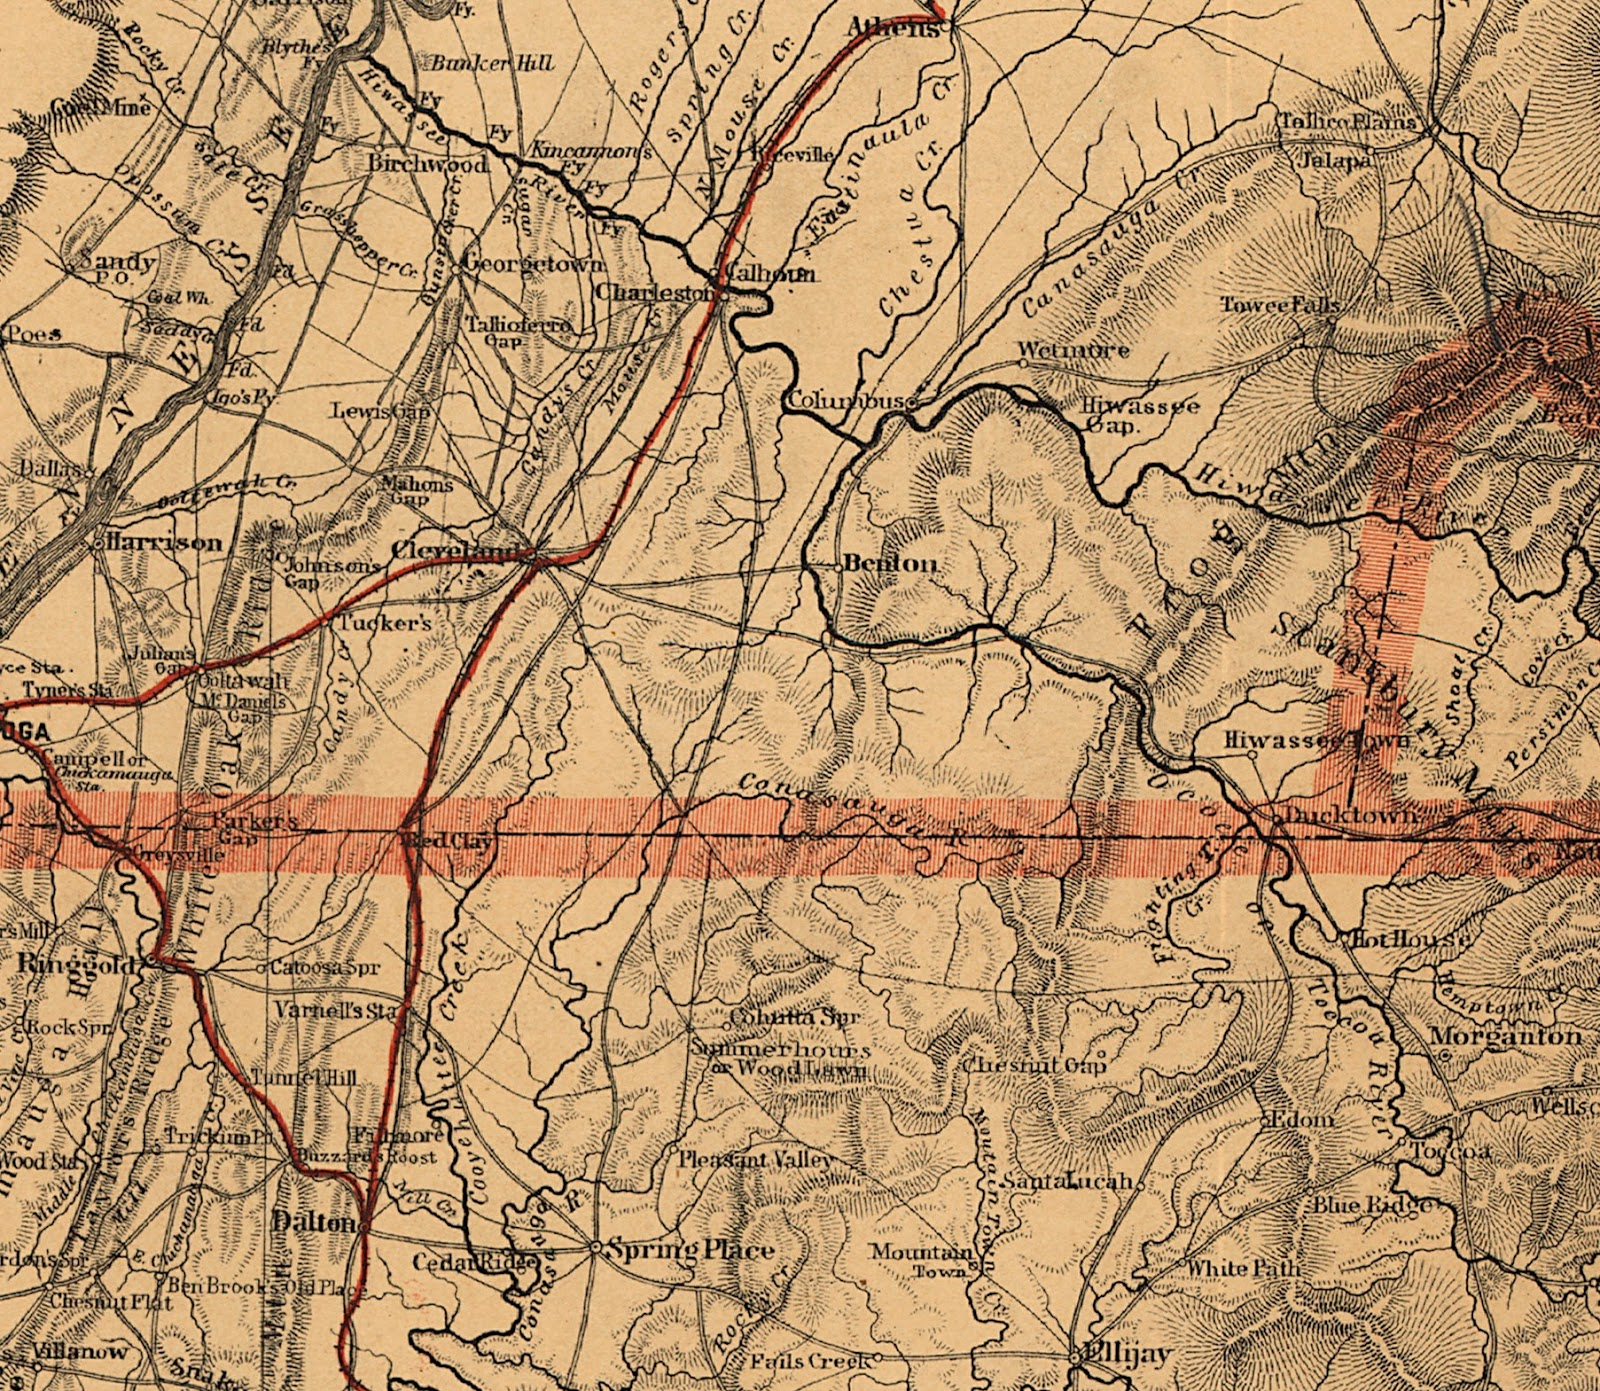 library of congress geography and map division mountain region of nc and tenn dtl columbus tenn area